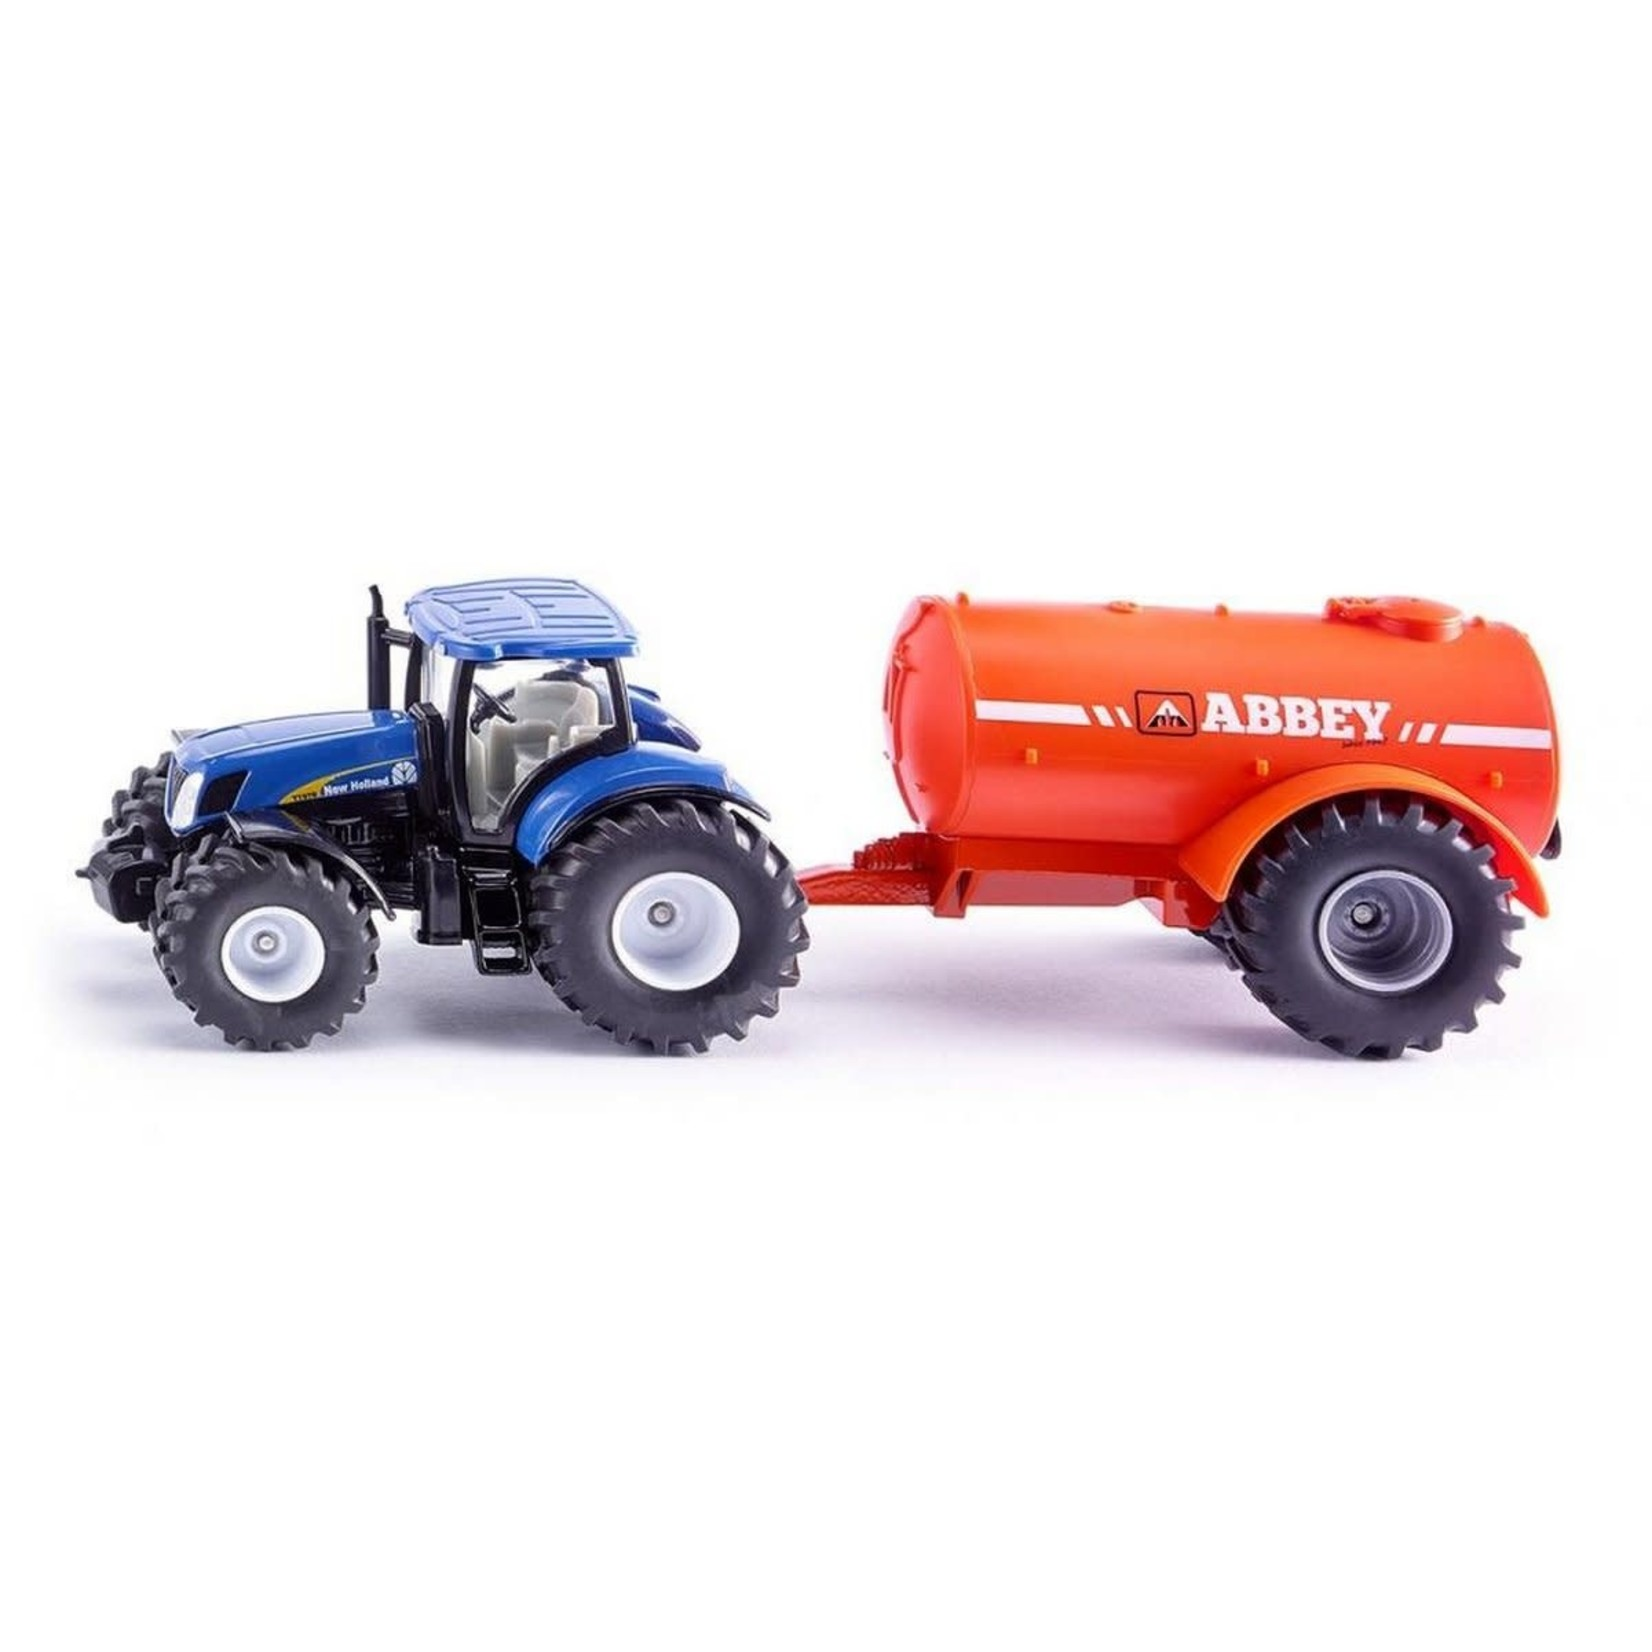 Siku 1:50 NEW HOLLAND W/SINGLE AXLE ABBEY TANKER